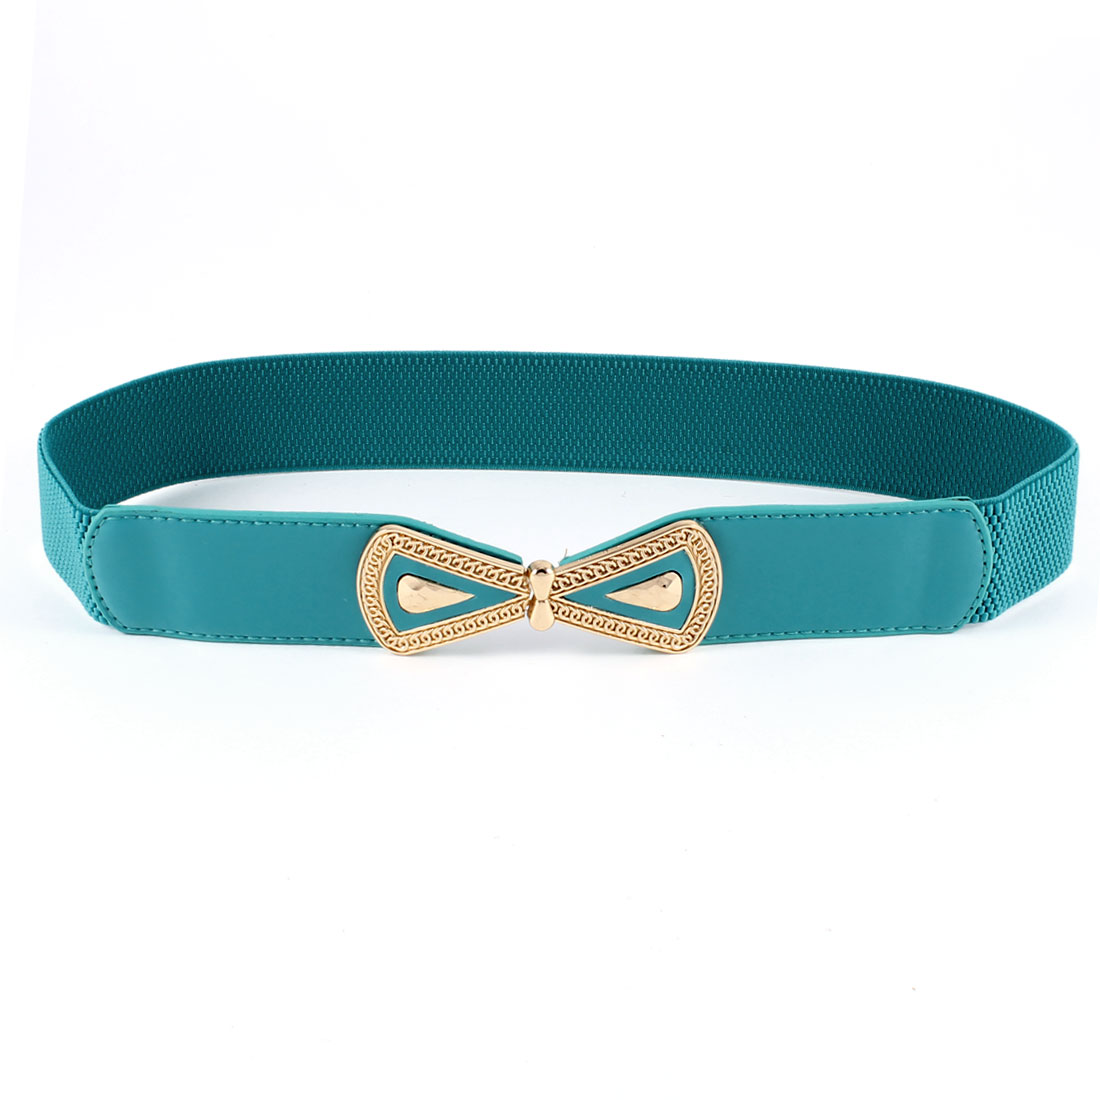 Lady Bowtie Interlock Buckle Faux Leather Thin Skinny Waistband Belt Teal Green